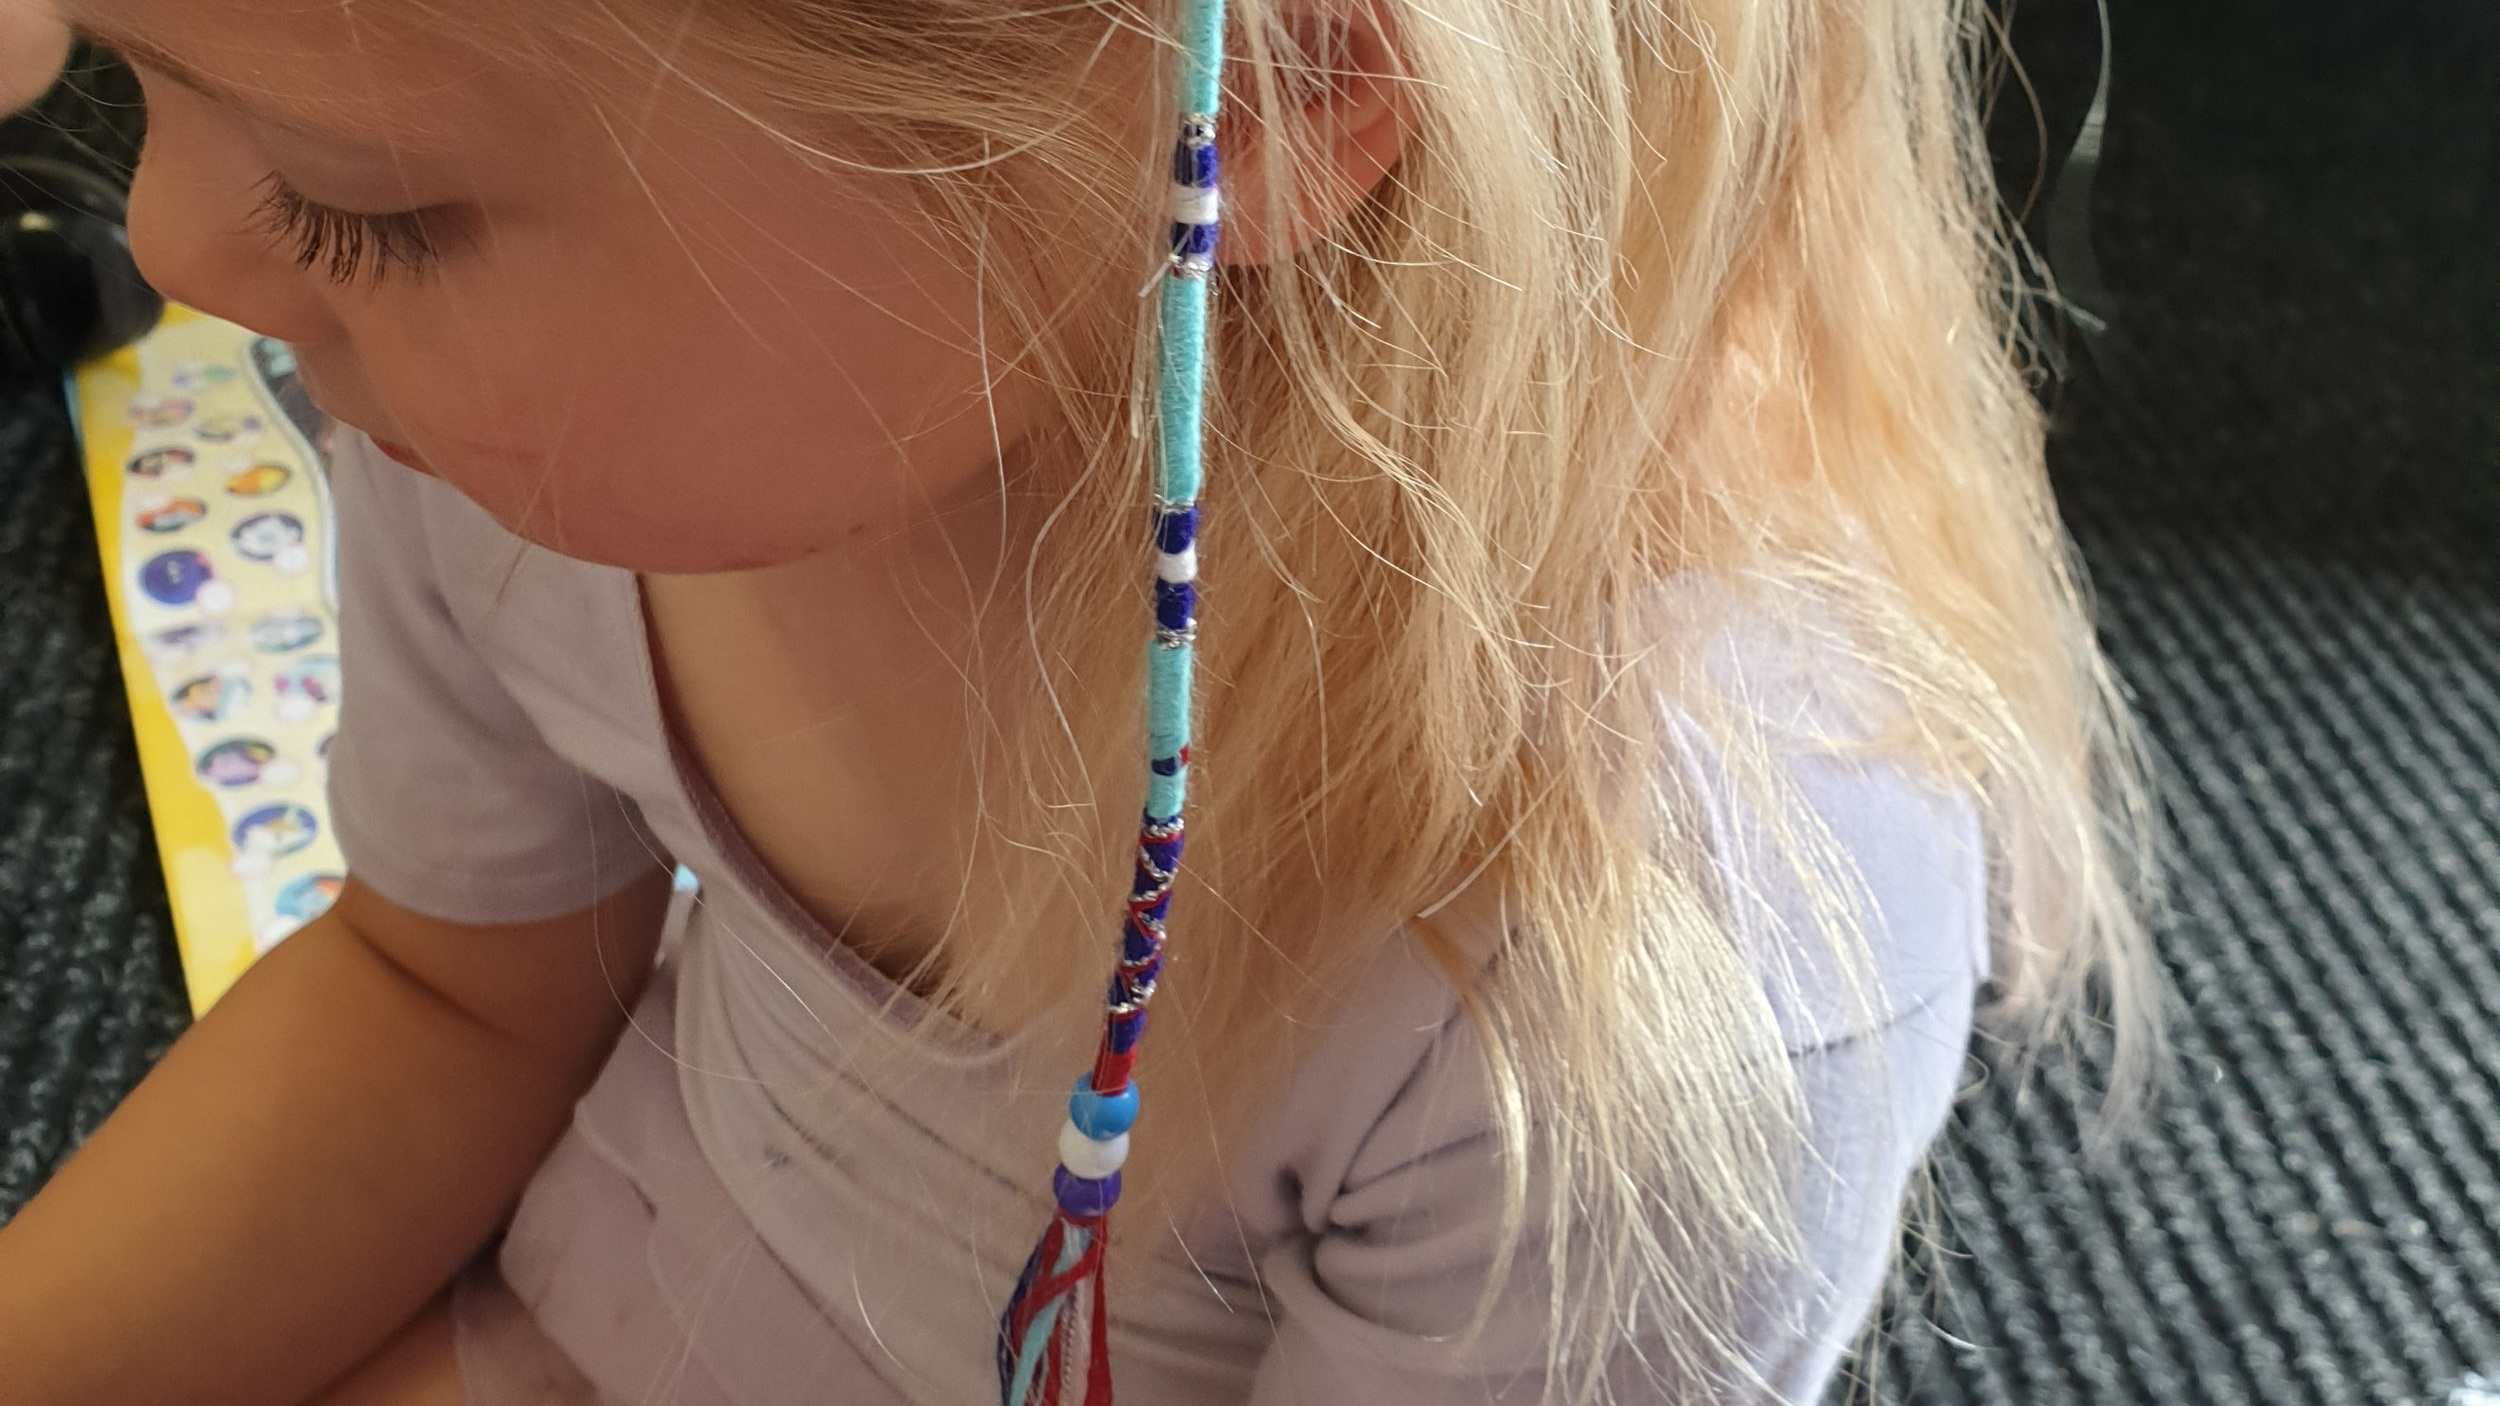 Samantha Corbin - Workshop - I will be adding colourful beaded or feather braids into the children's hair as an extension. This will be charged at £5 per braid.If children don't like or want braids there will be the option for coloured hair chalk. This will be charged at £1 per child.I will also be selling friendship bracelets and create your own bracelets. This varies in prices.